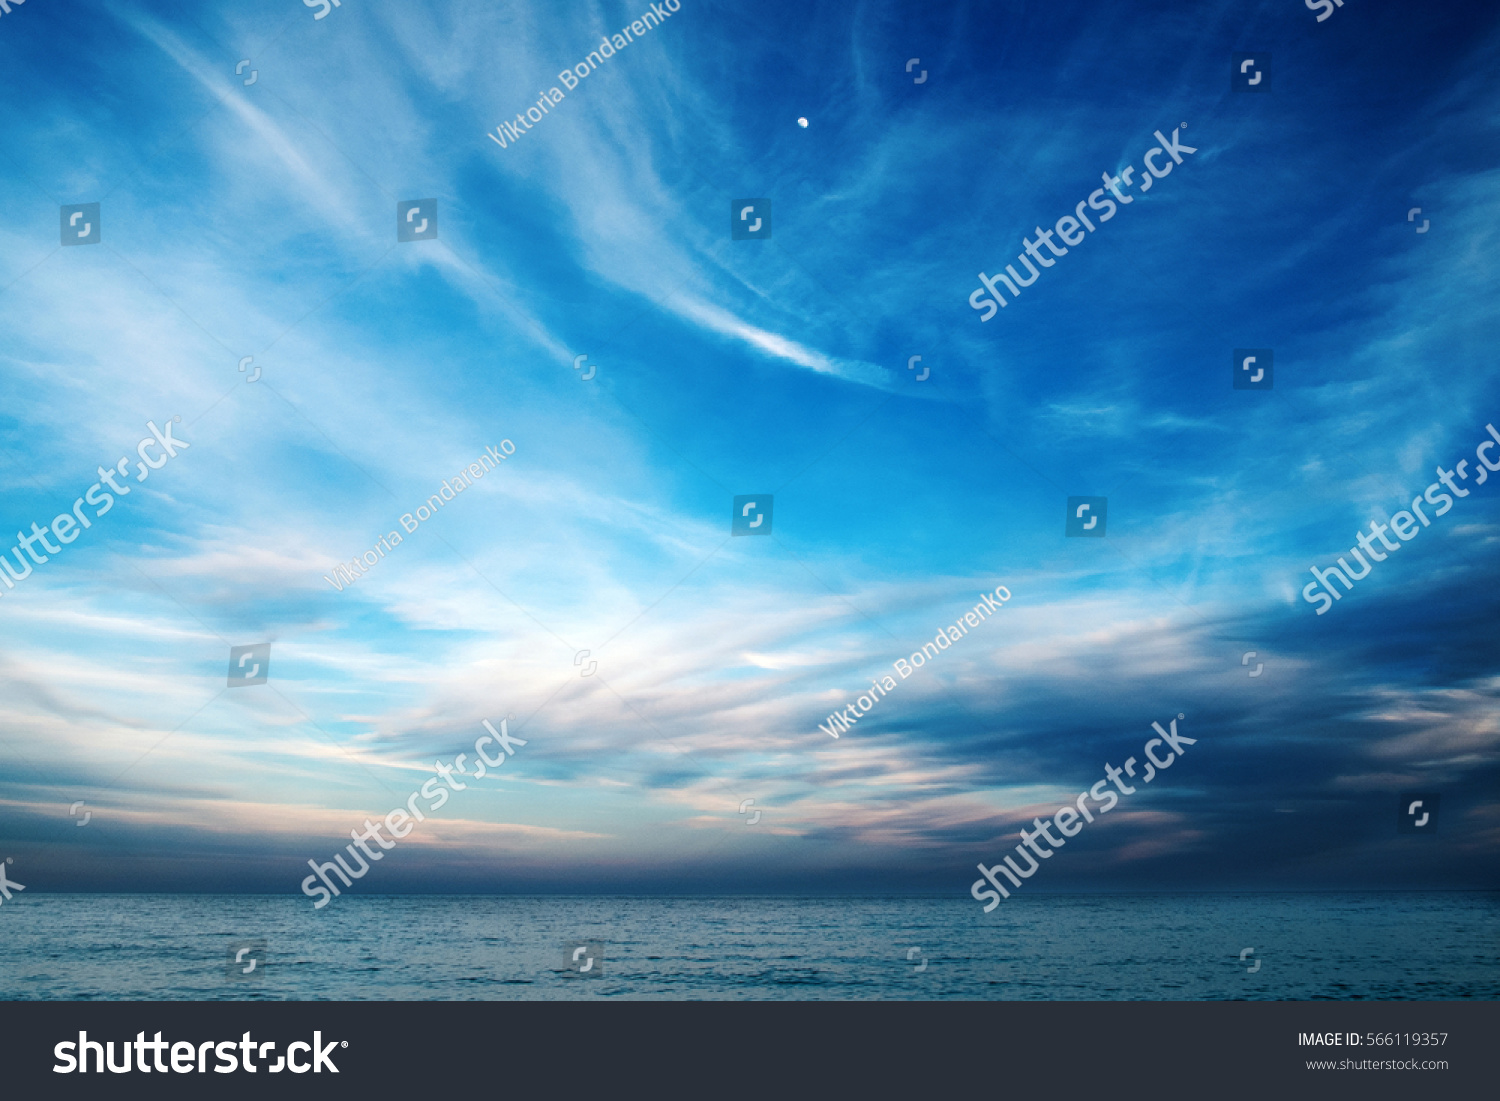 blue sky clouds over sea wallpapers stock photo (edit now)- shutterstock